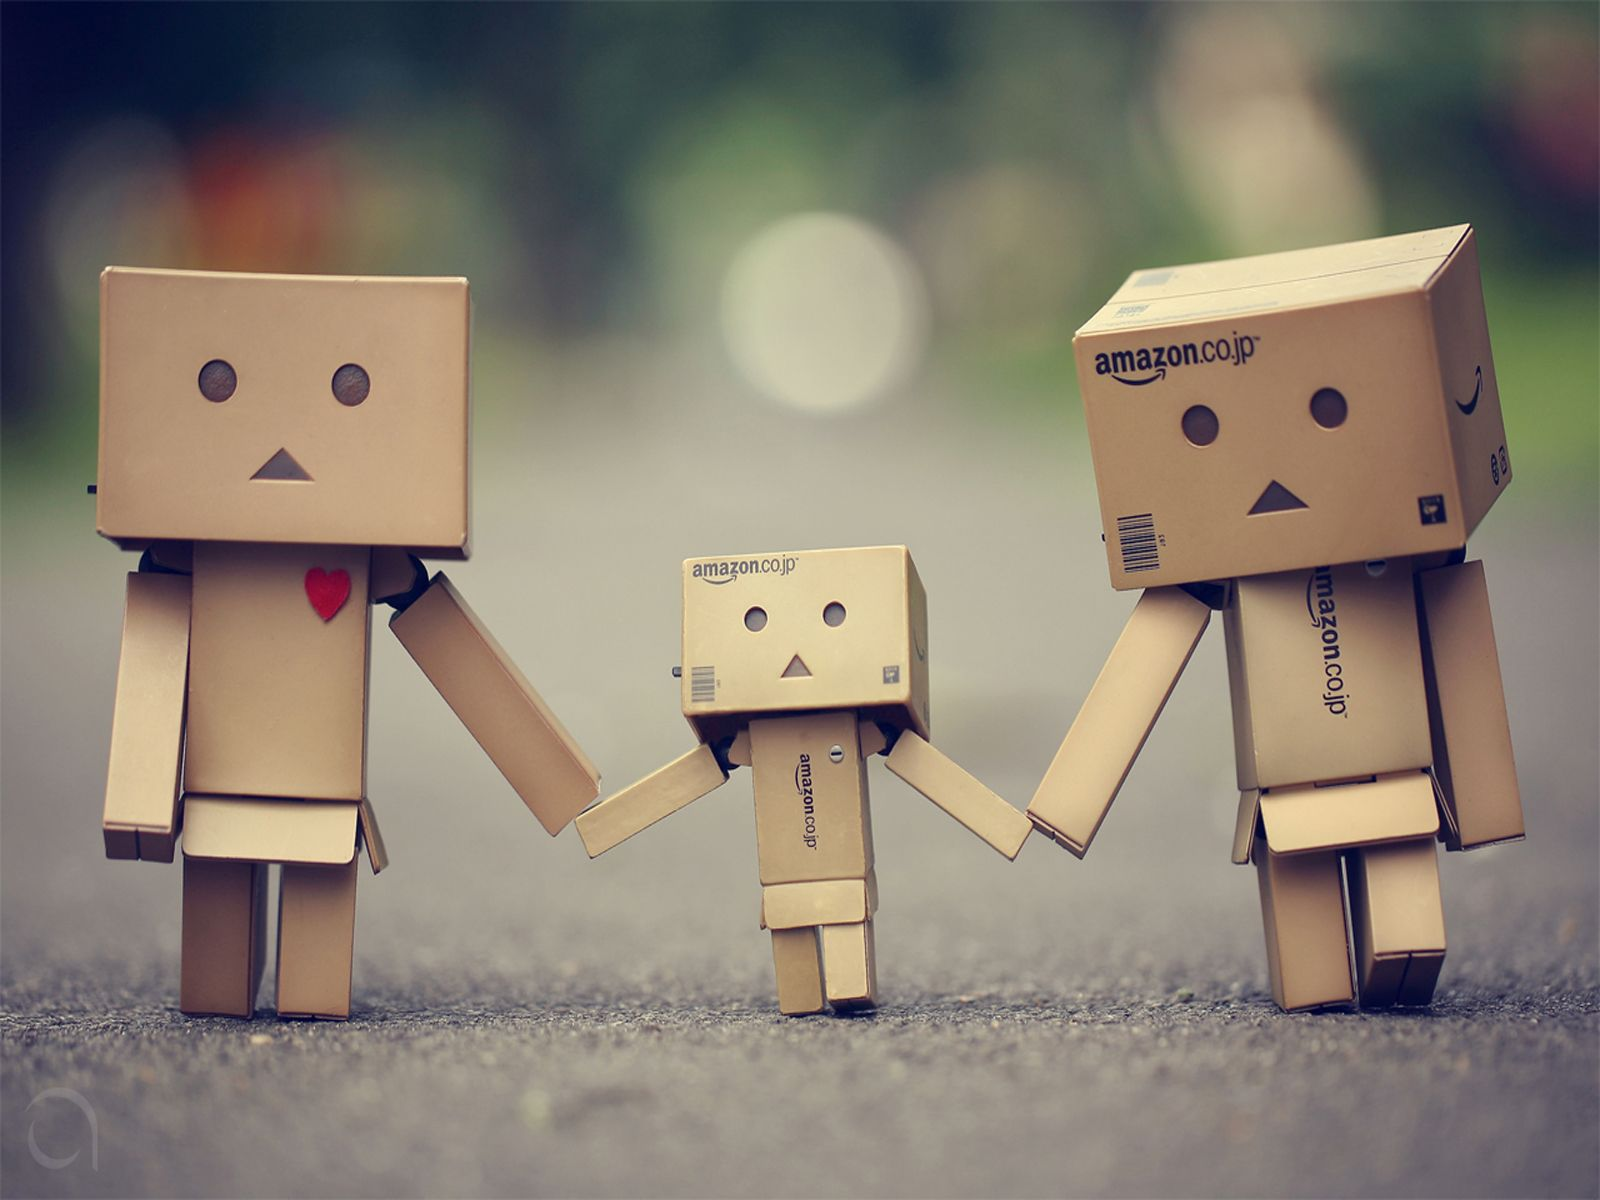 Cute Boxman Family Hd Wallpaper Danbo Cardboard Robot Amazon Box